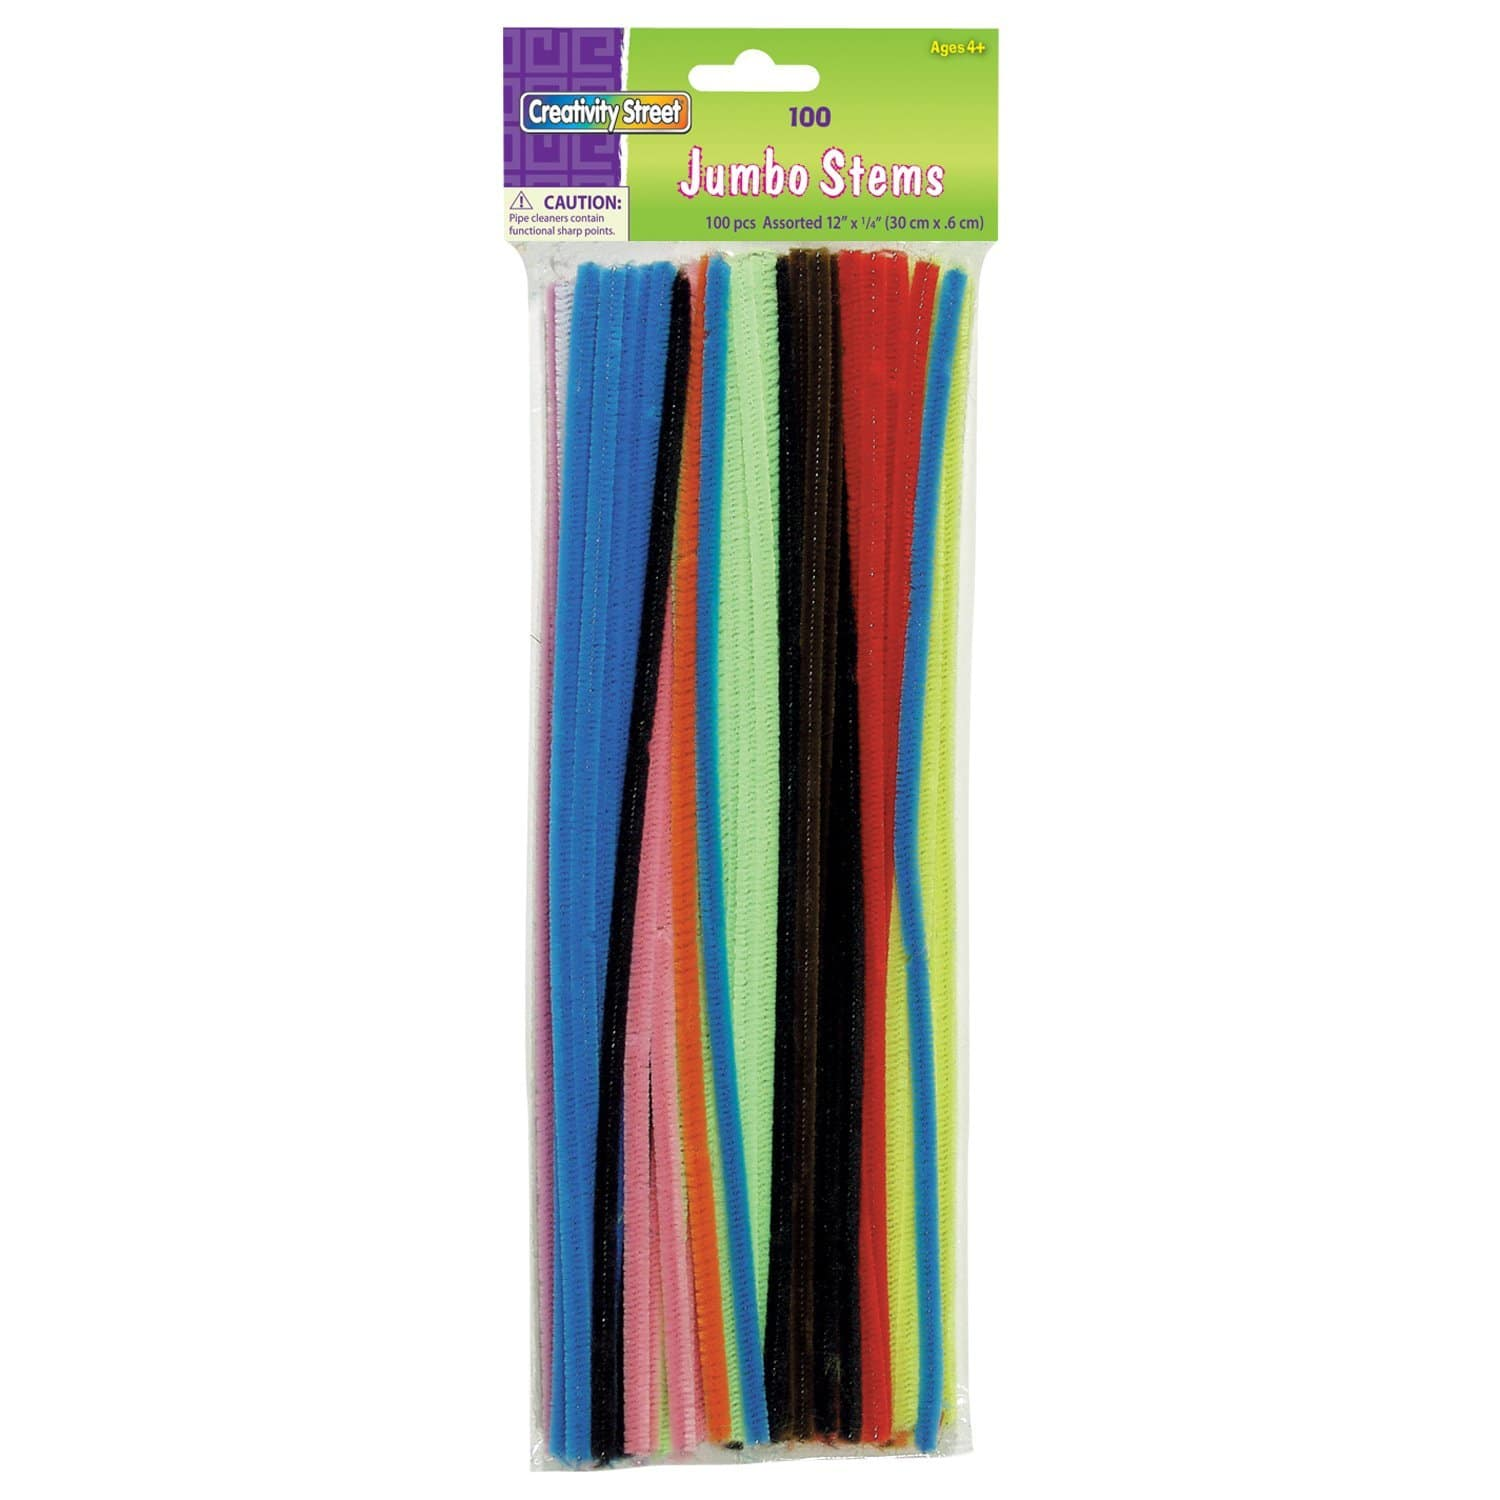 $1.23 shipped Creativity Street Chenille Stems/Pipe Cleaners 12 Inch x 6mm 100-Piece, Assorted Colors w/ Prime @ Amazon